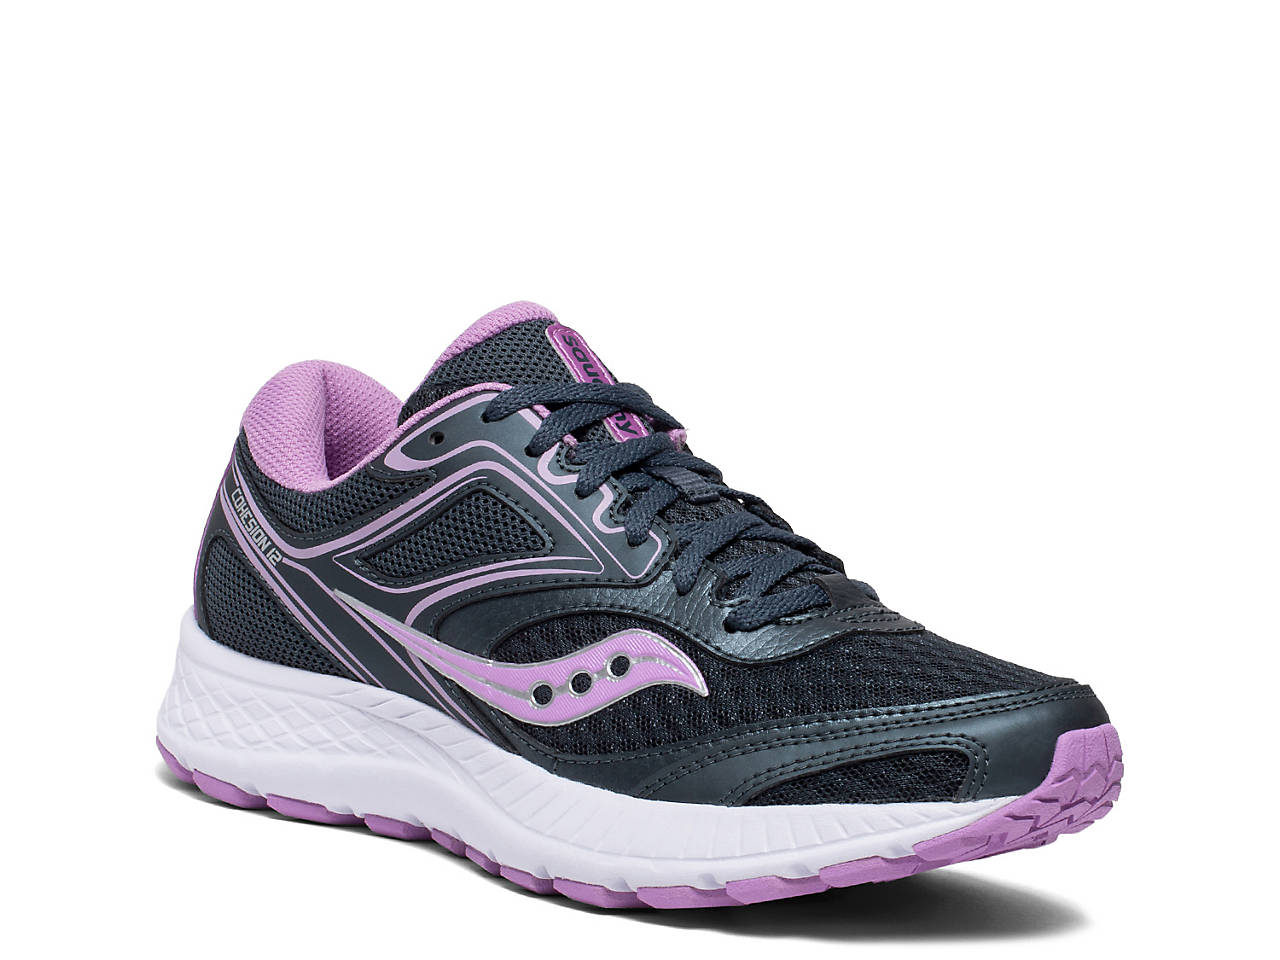 21283d228c Cohesion 12 Running Shoe - Women's